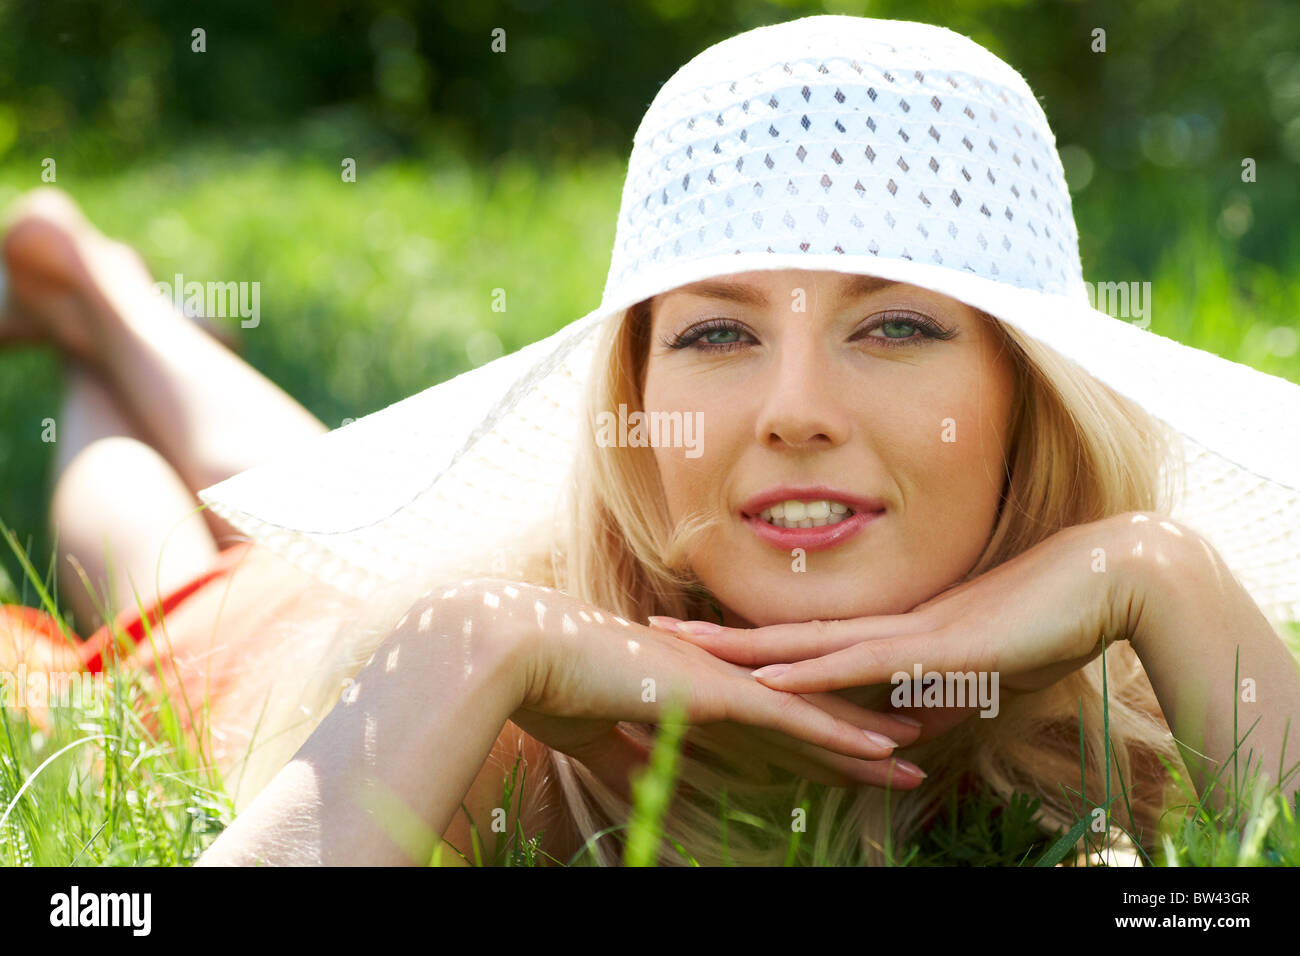 Pretty young lady in elegant hat relaxing in green grass Stock Photo